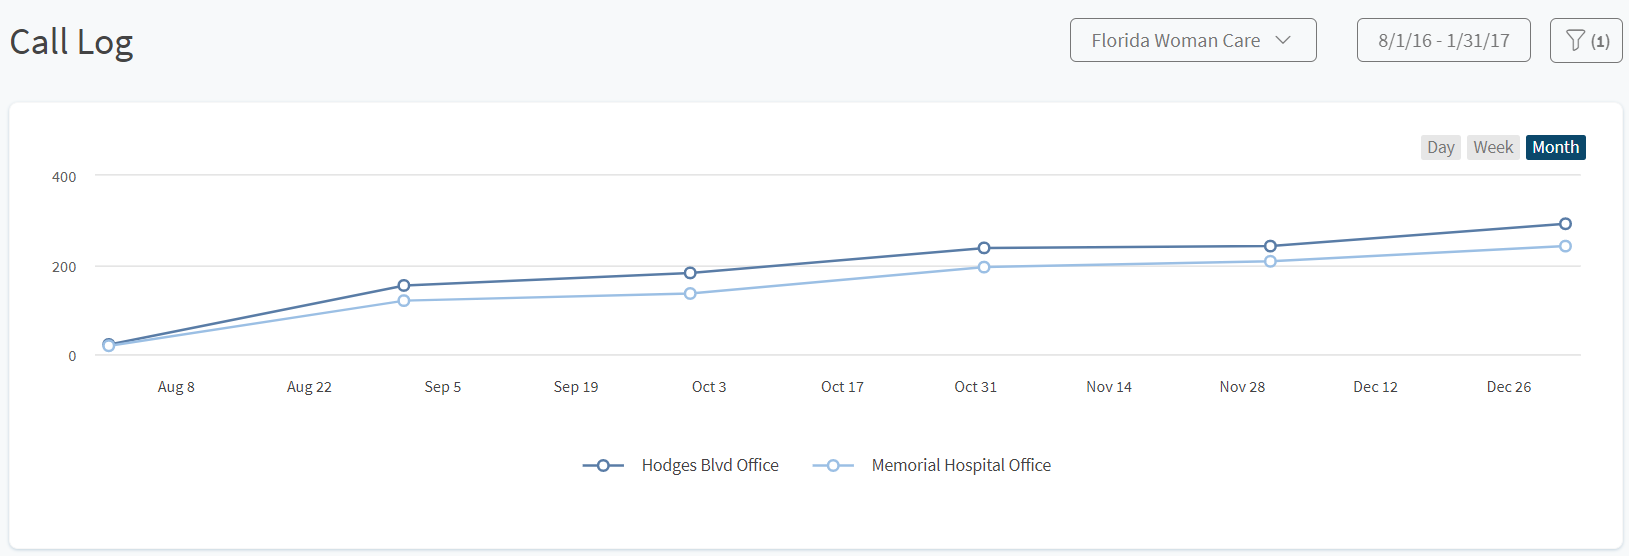 FWC OBGYN case study phone calls by month initial August thru January